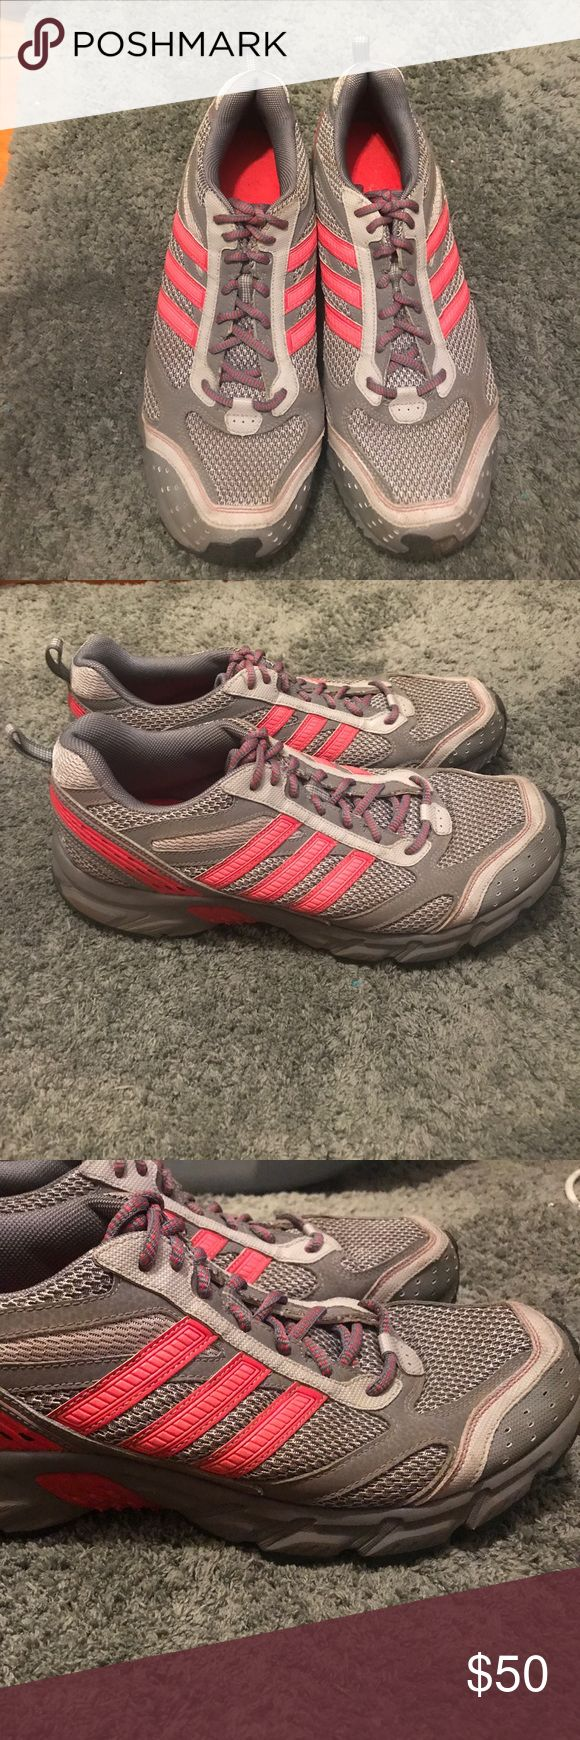 Adidas Women's Hiking Shoes Size 11 Adidas women's day hiking/trail running shoe. Only used once, excellent shape. adidas Shoes Sneakers